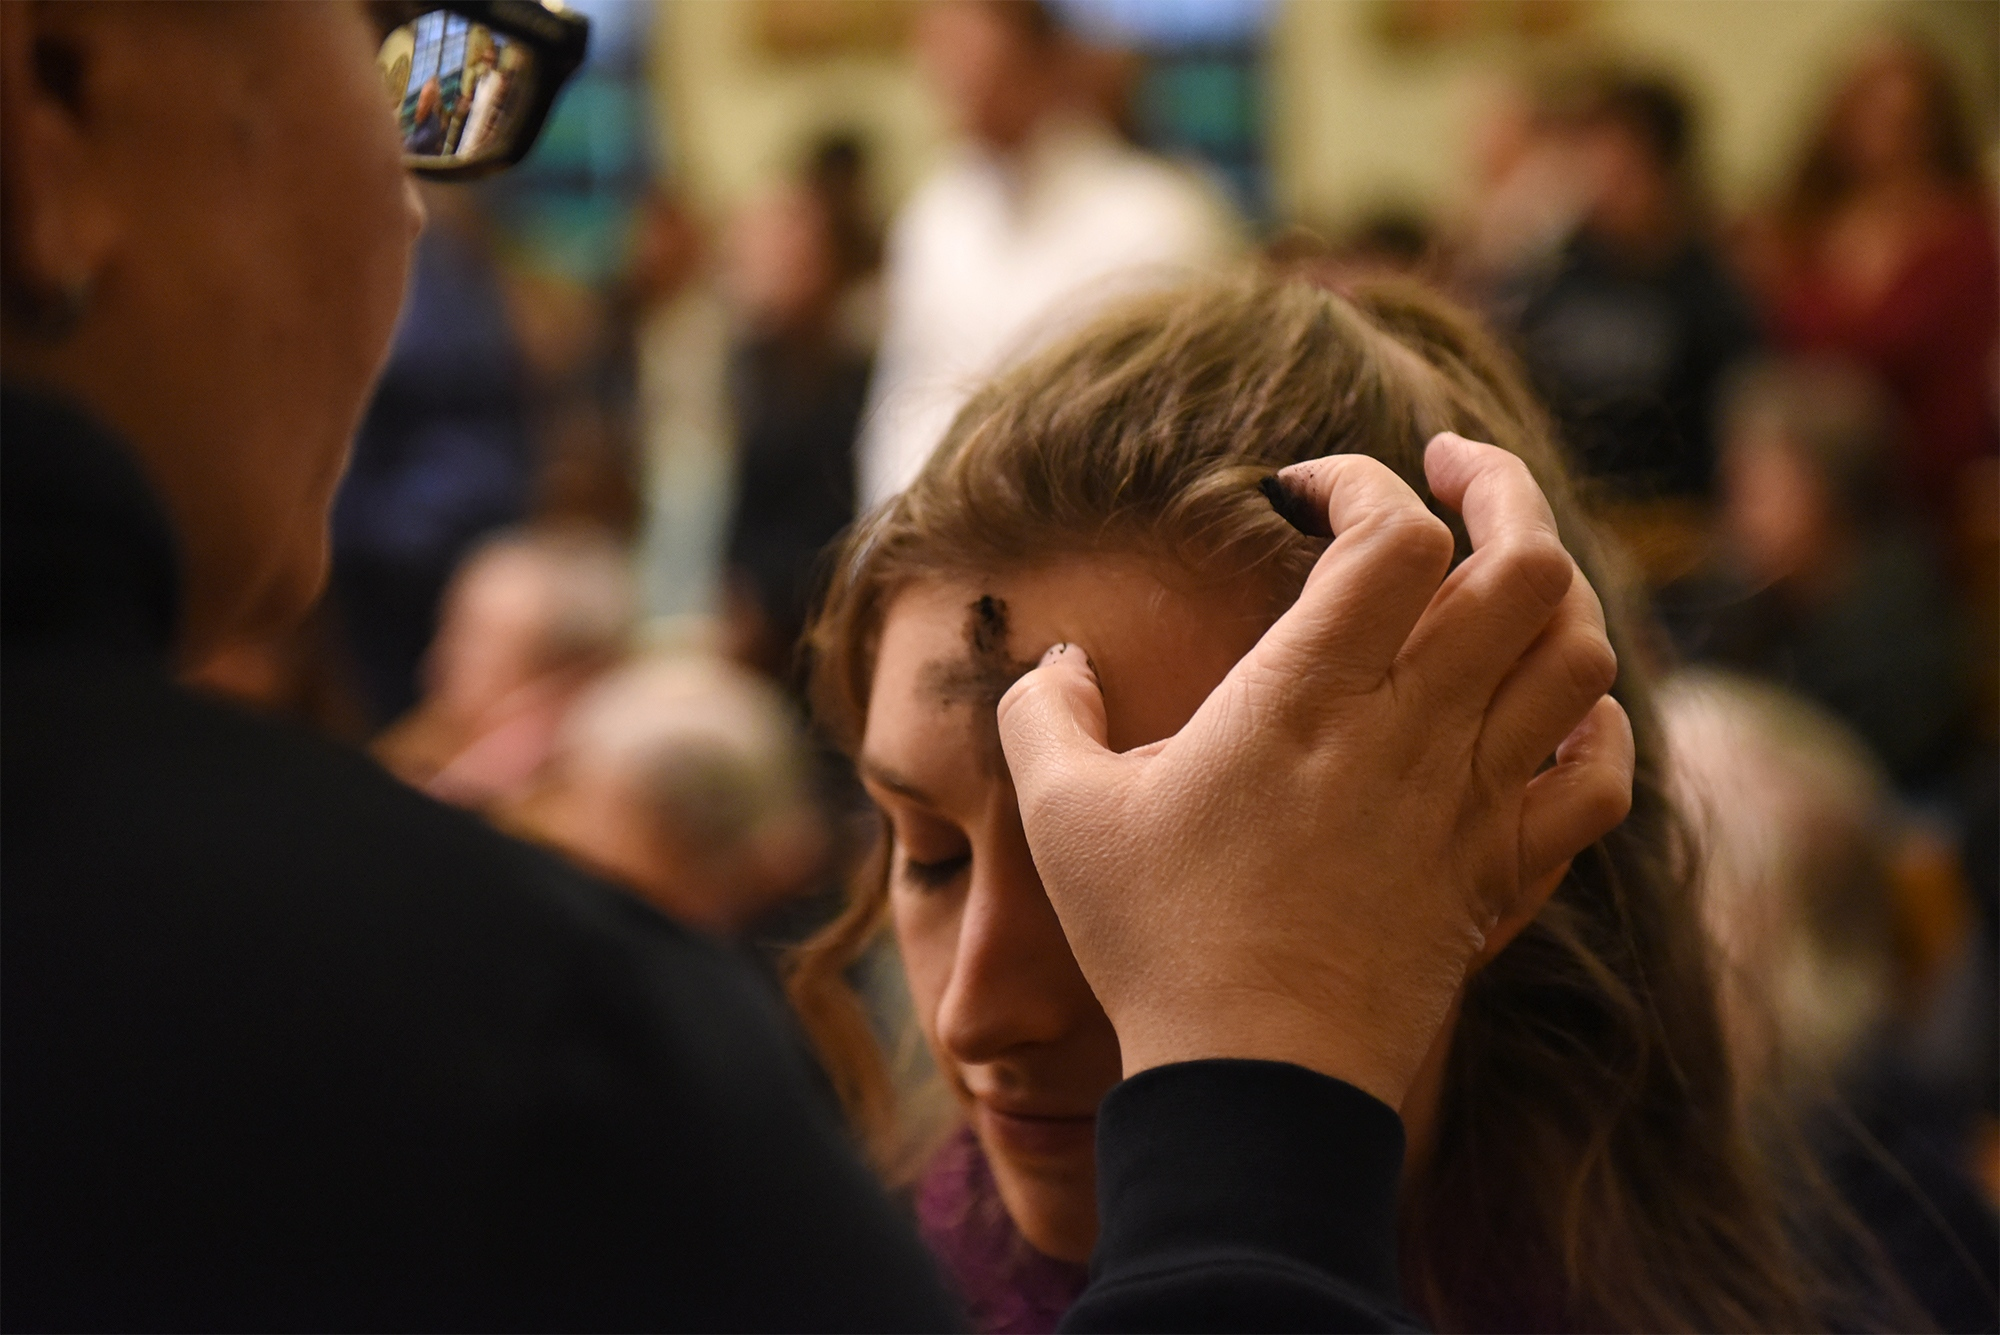 Emily Million receives a cross of ash during evening mass on Wednesday March 6, 2019 at Sacred Heart Catholic Church in Columbia. Traditionally, members of the Catholic Church receive crosses made of ash on their forehead, symbolizing repentance.